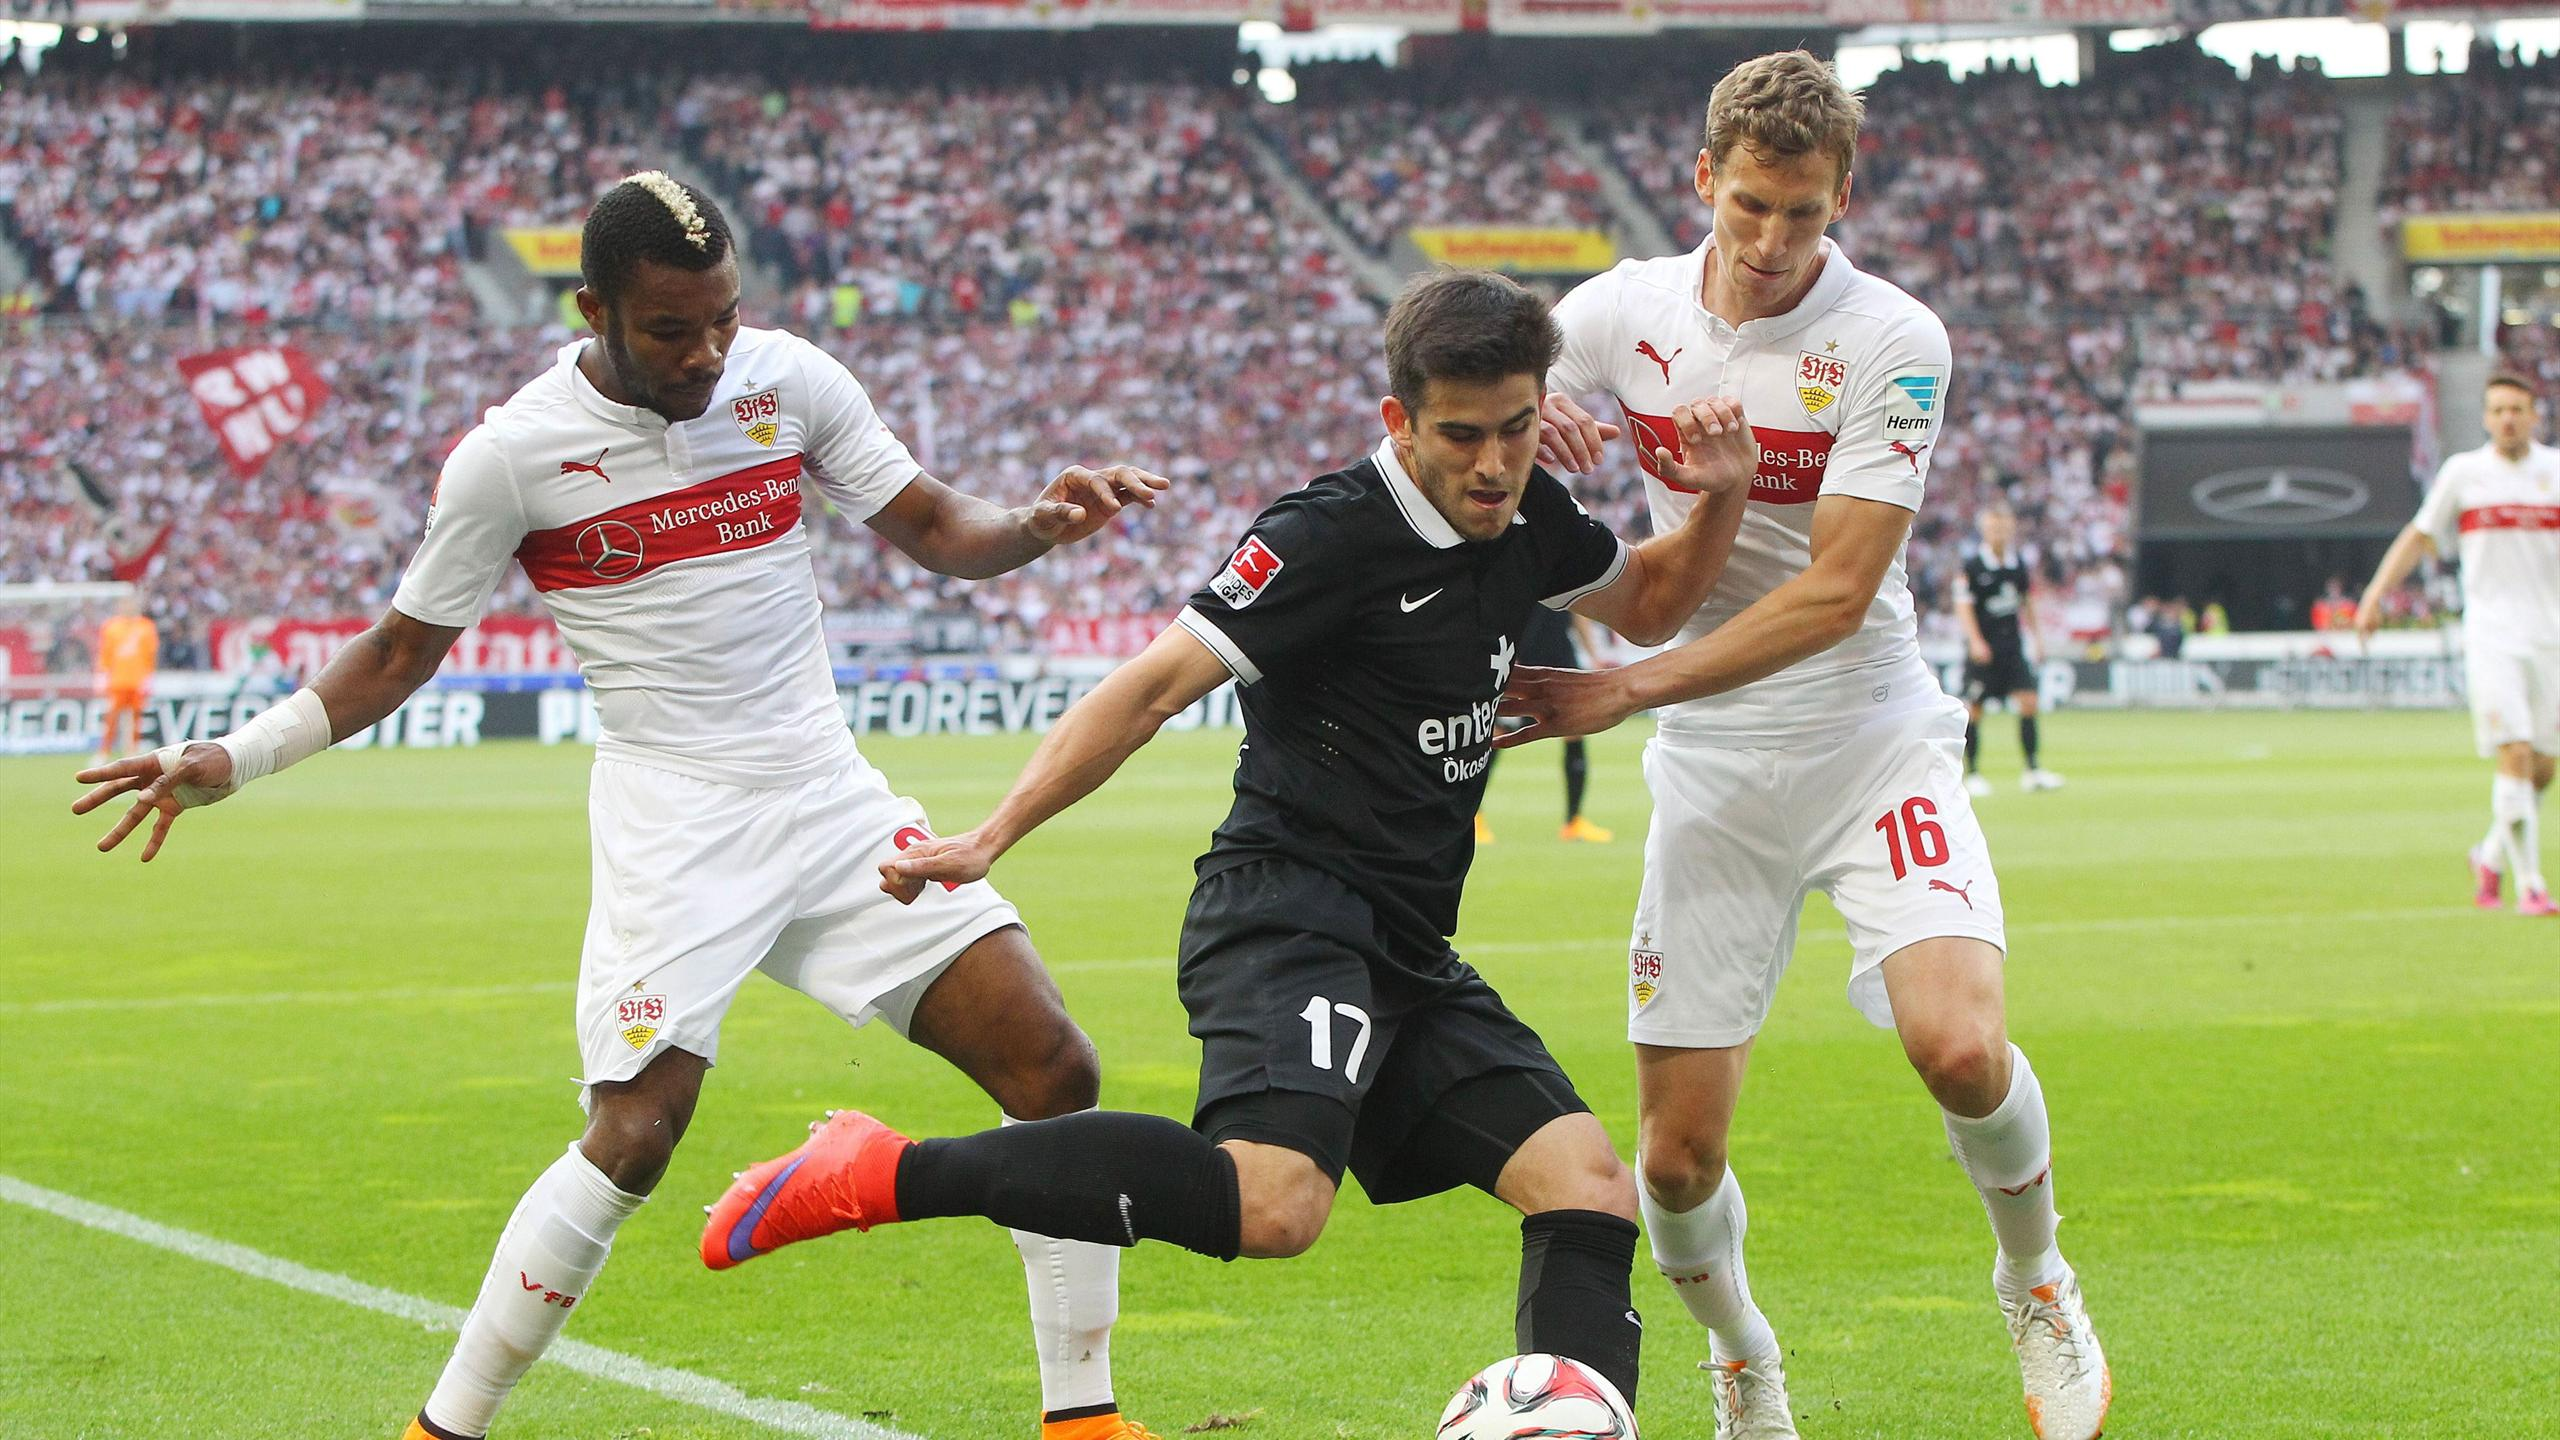 Video: Stuttgart vs Mainz 05